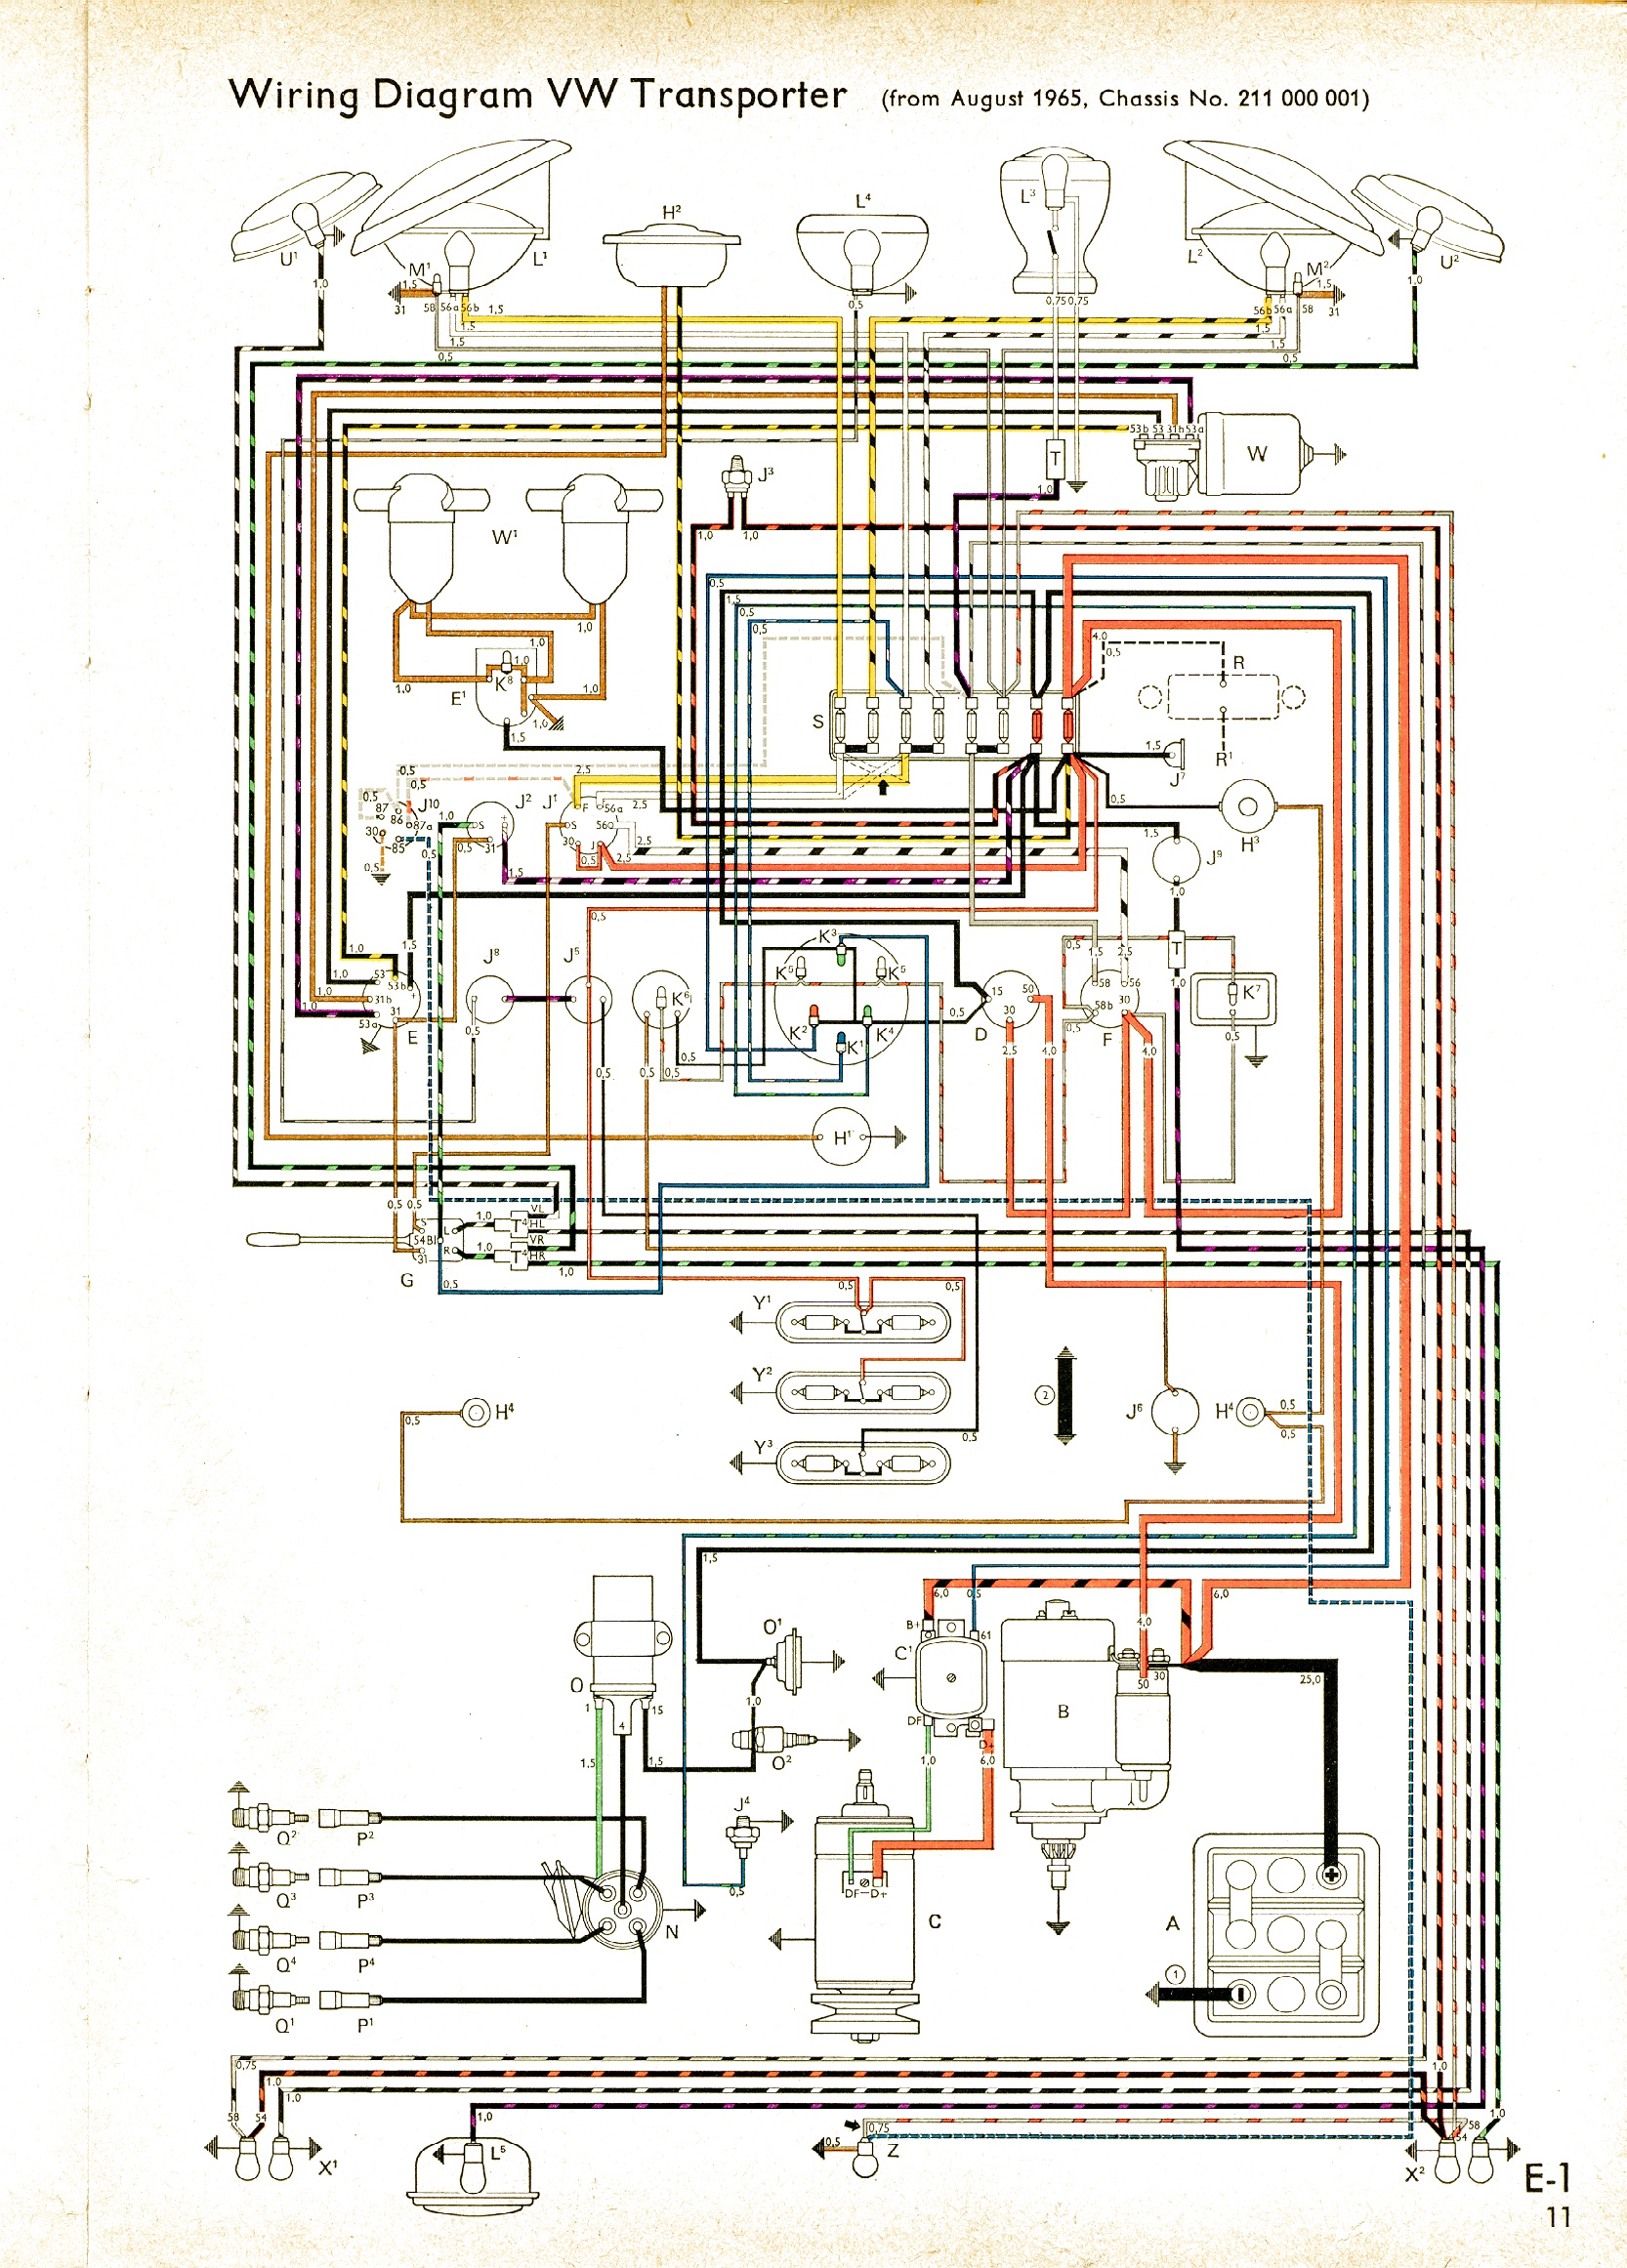 bus 65 vintagebus com vw bus (and other) wiring diagrams vw polo wiring diagram download at webbmarketing.co